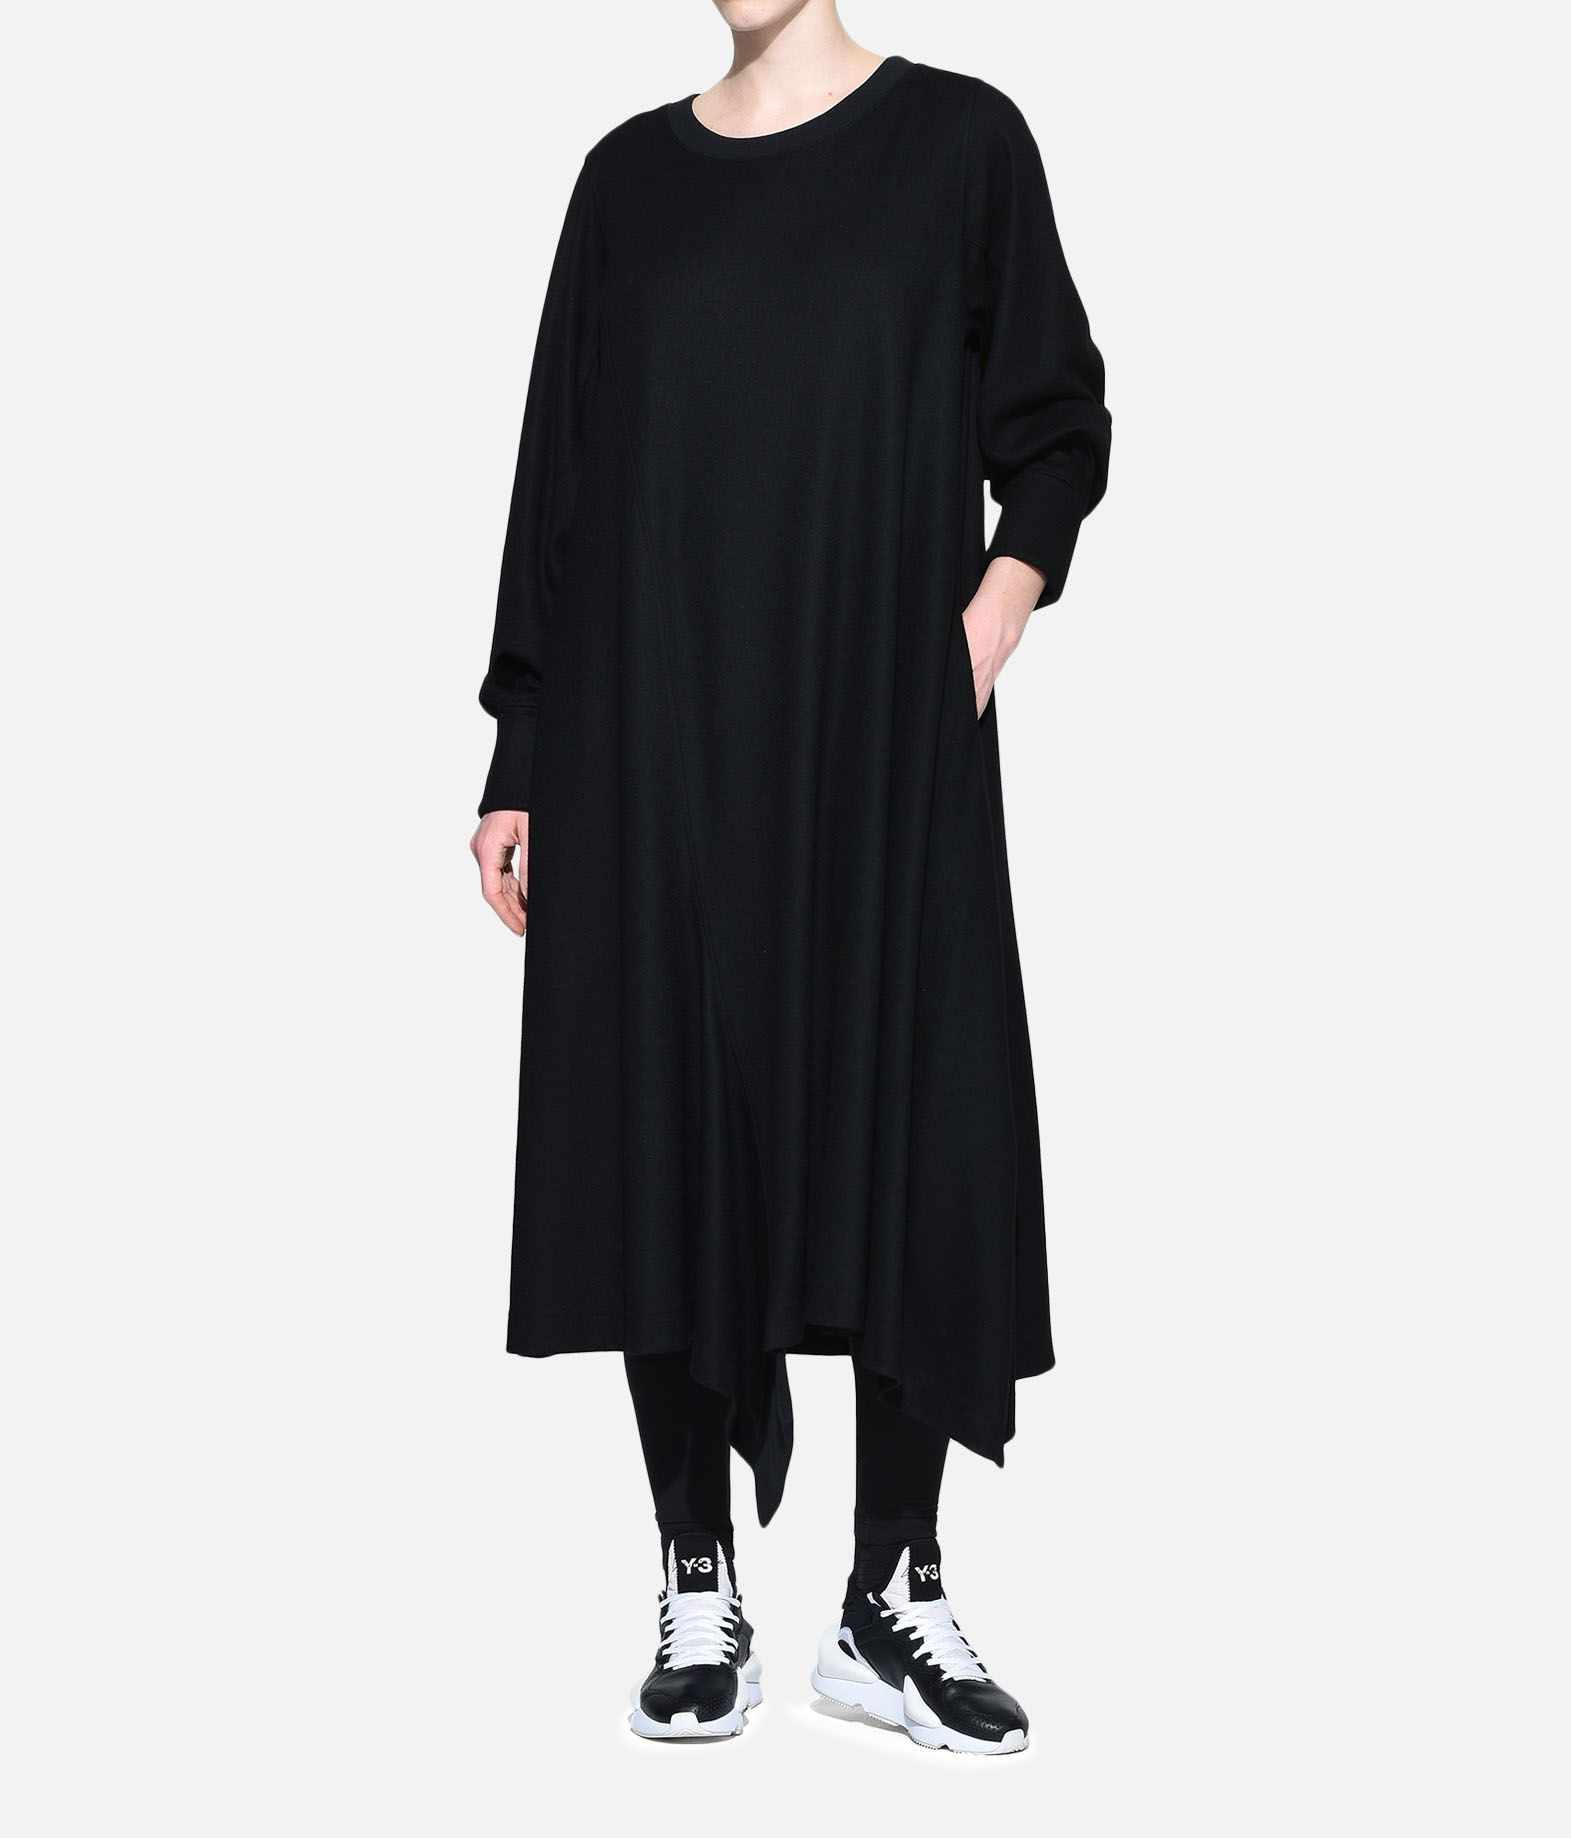 Y-3 Y-3 Wool Dress Long dress Woman a